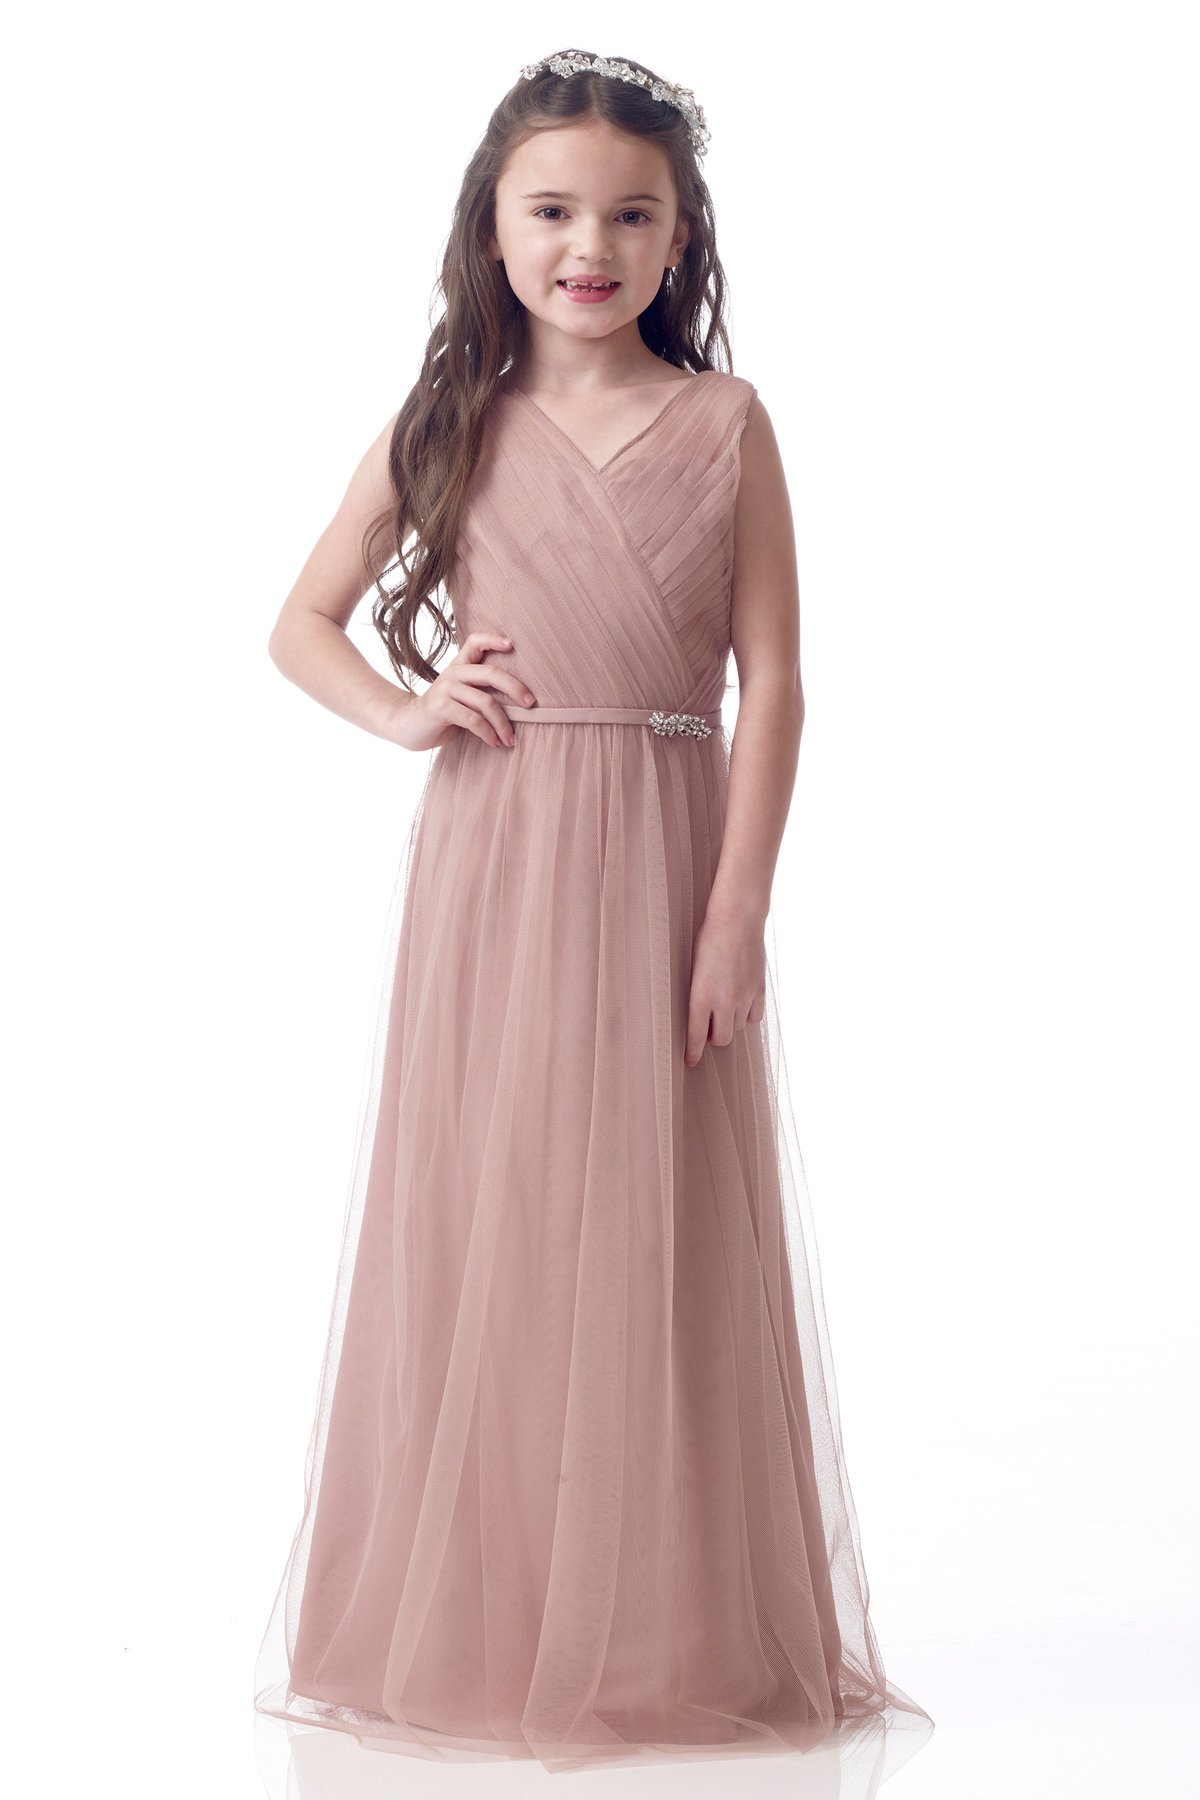 Adorable Junior Bridesmaid Dresses From Alexia Designs. Wedding Guest Dresses Chicago. Vintage Wedding Dresses Philadelphia. Sweetheart Mermaid Wedding Dresses With Bling. How Much Are Pnina Wedding Dresses. Wedding Guest Dresses Evening. Vintage Wedding Dresses Islington. Black Wedding Dresses In History. Wedding Gallery Bridesmaid Dresses